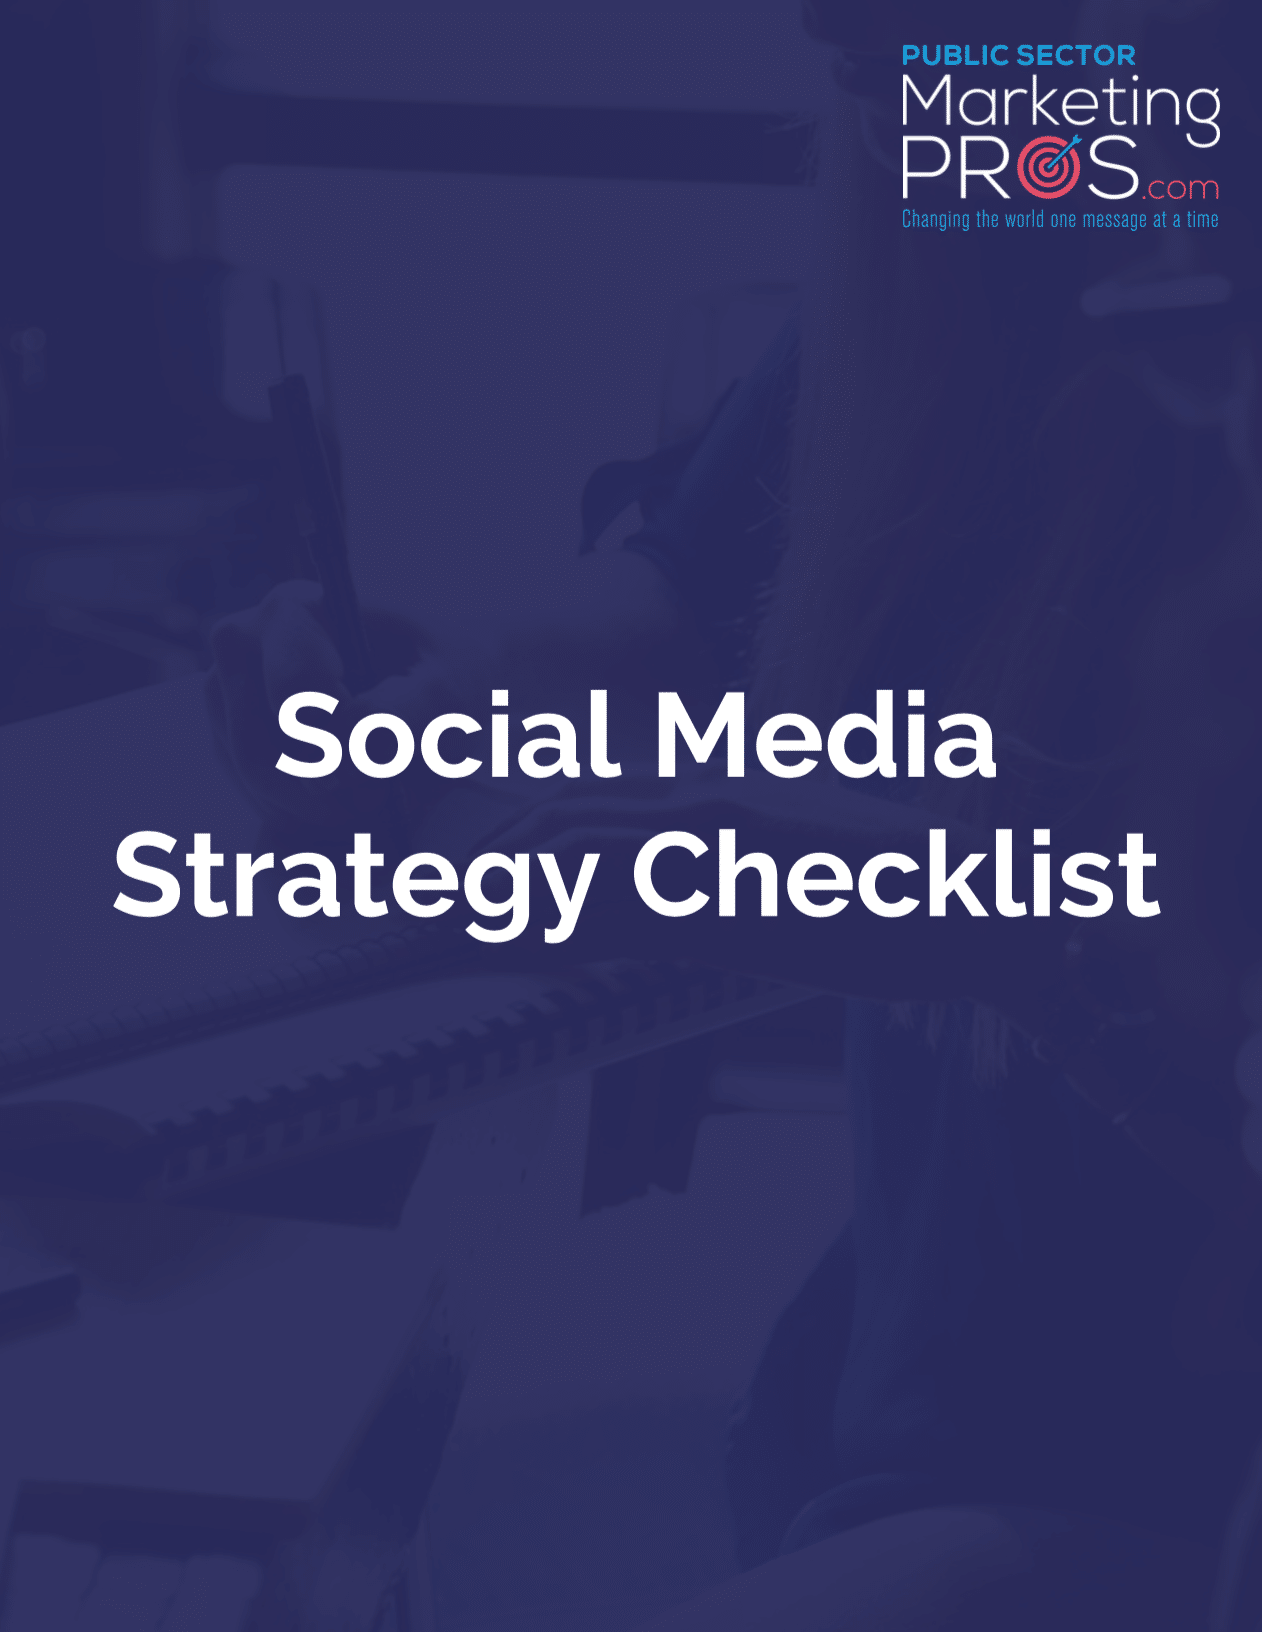 Socail Media Checklist